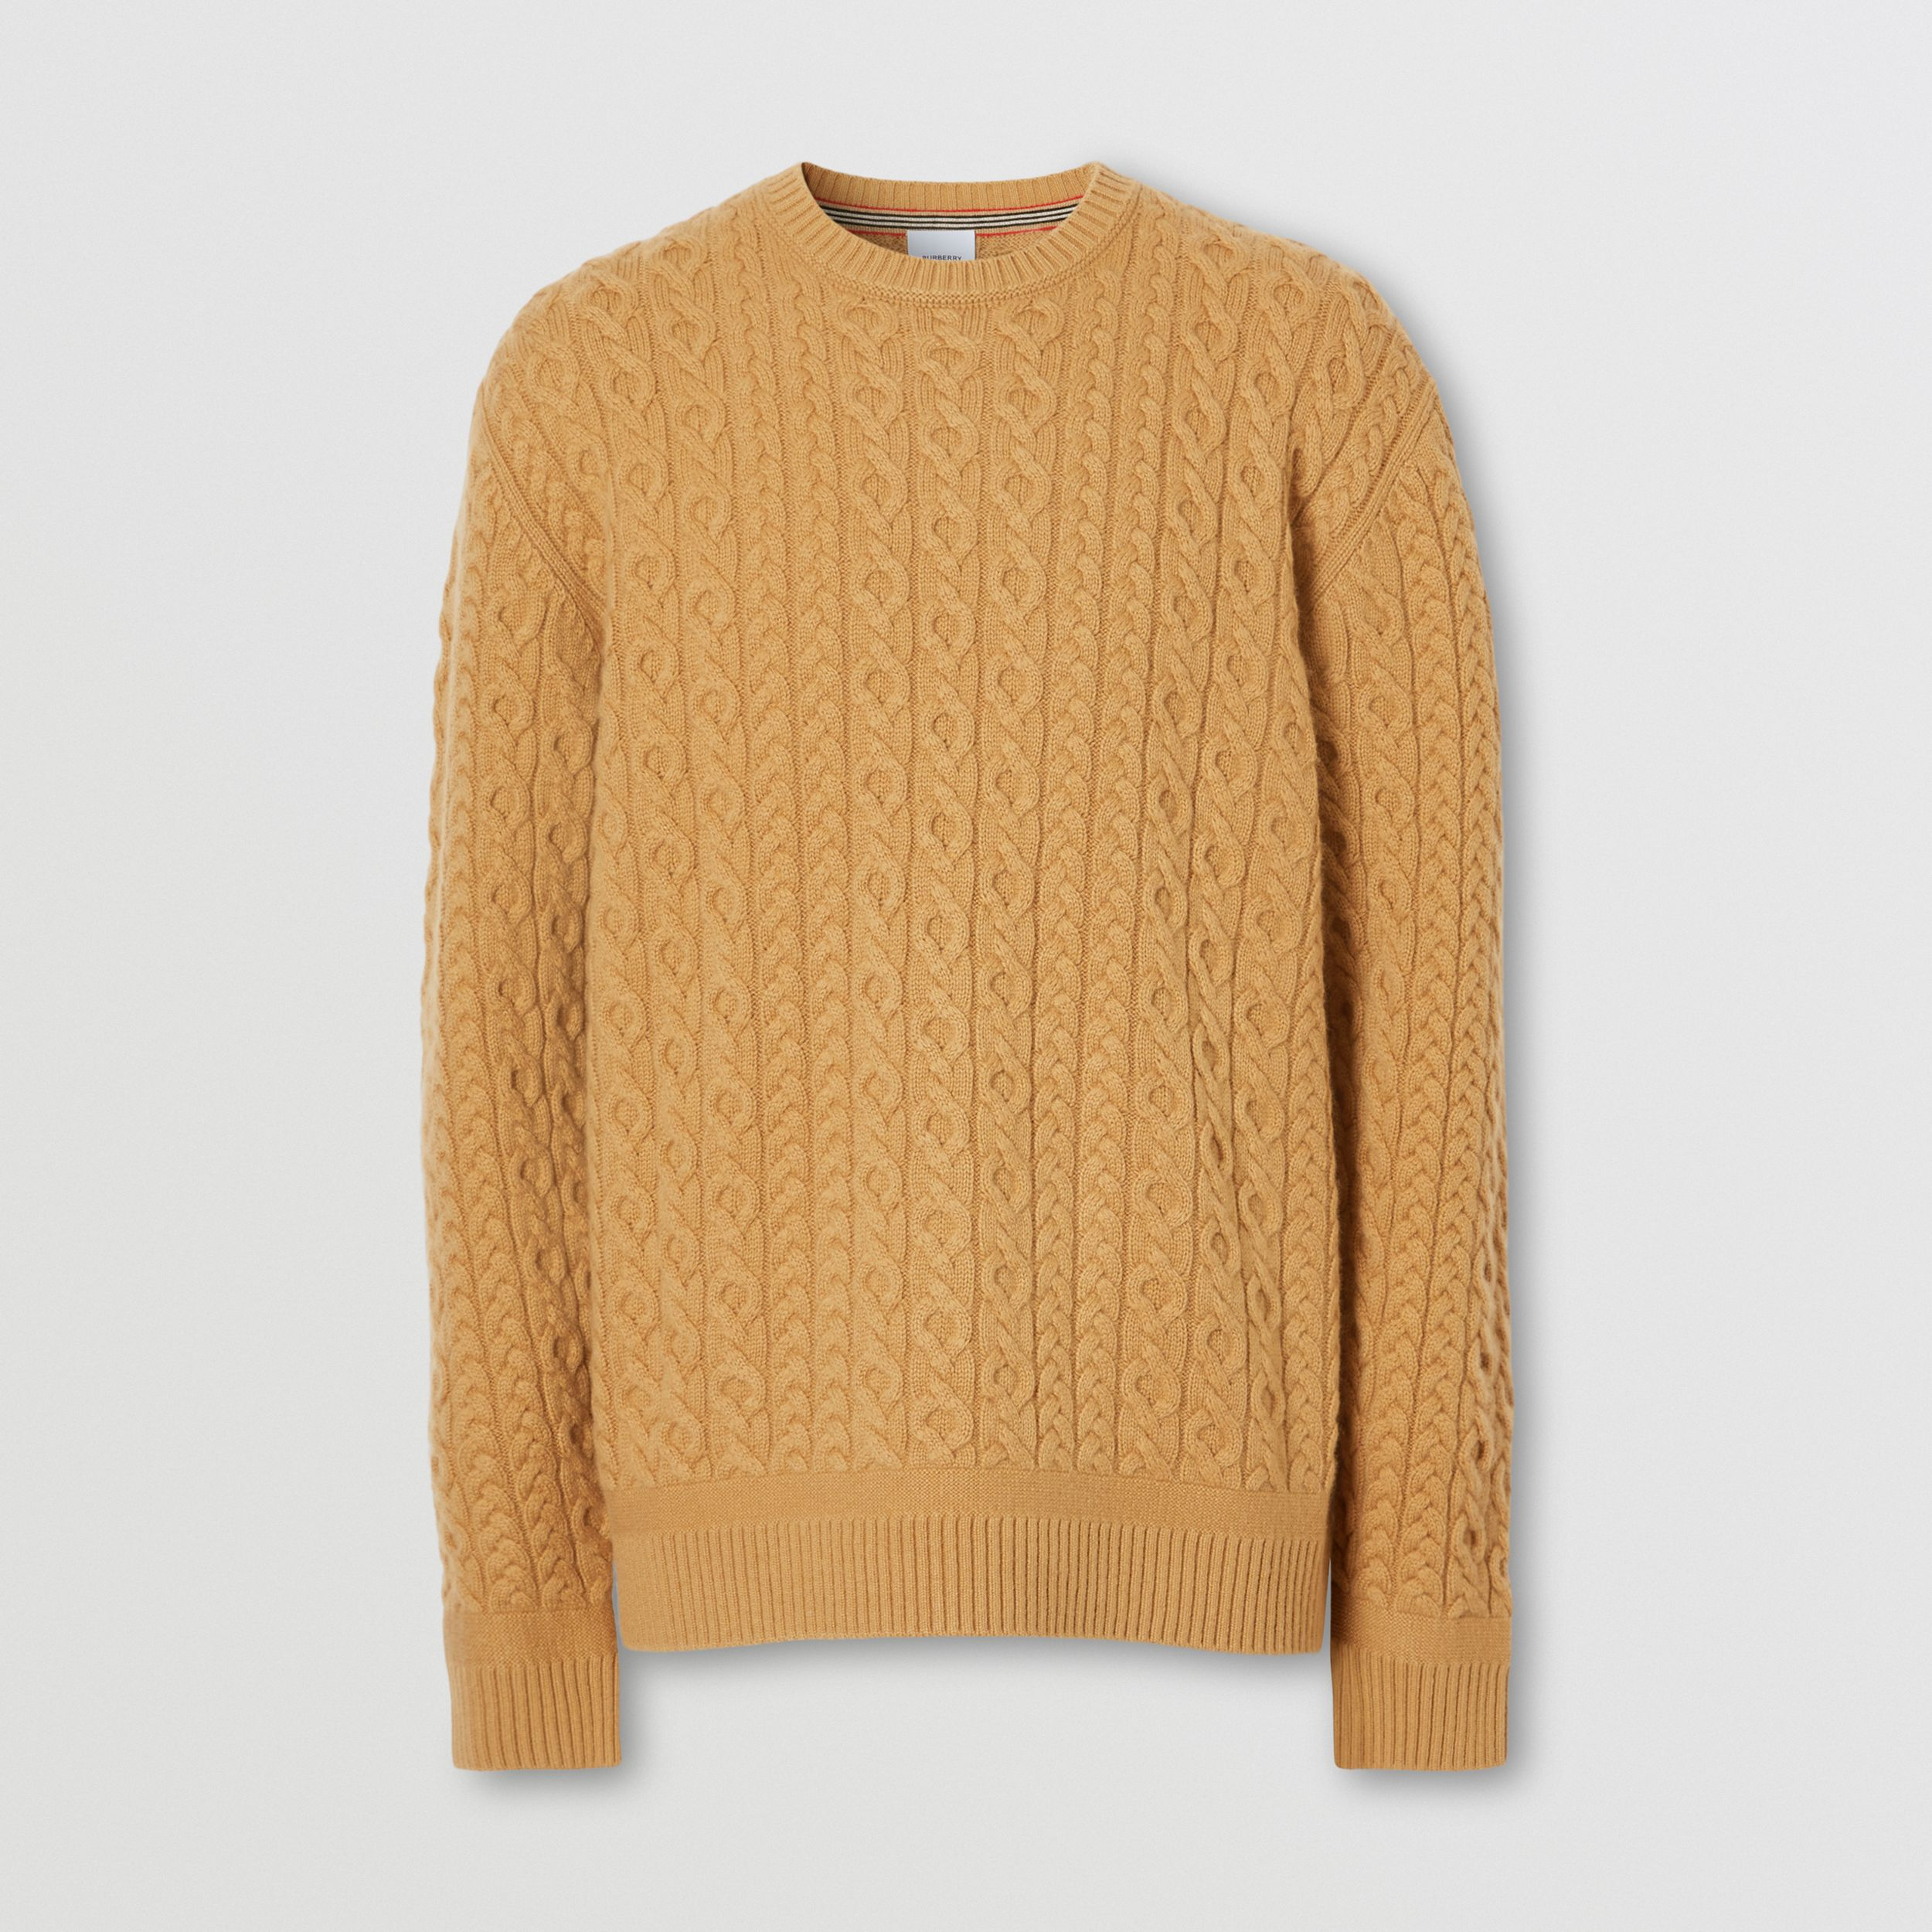 Cable Knit Wool Cashmere Sweater in Camel - Men | Burberry - 4